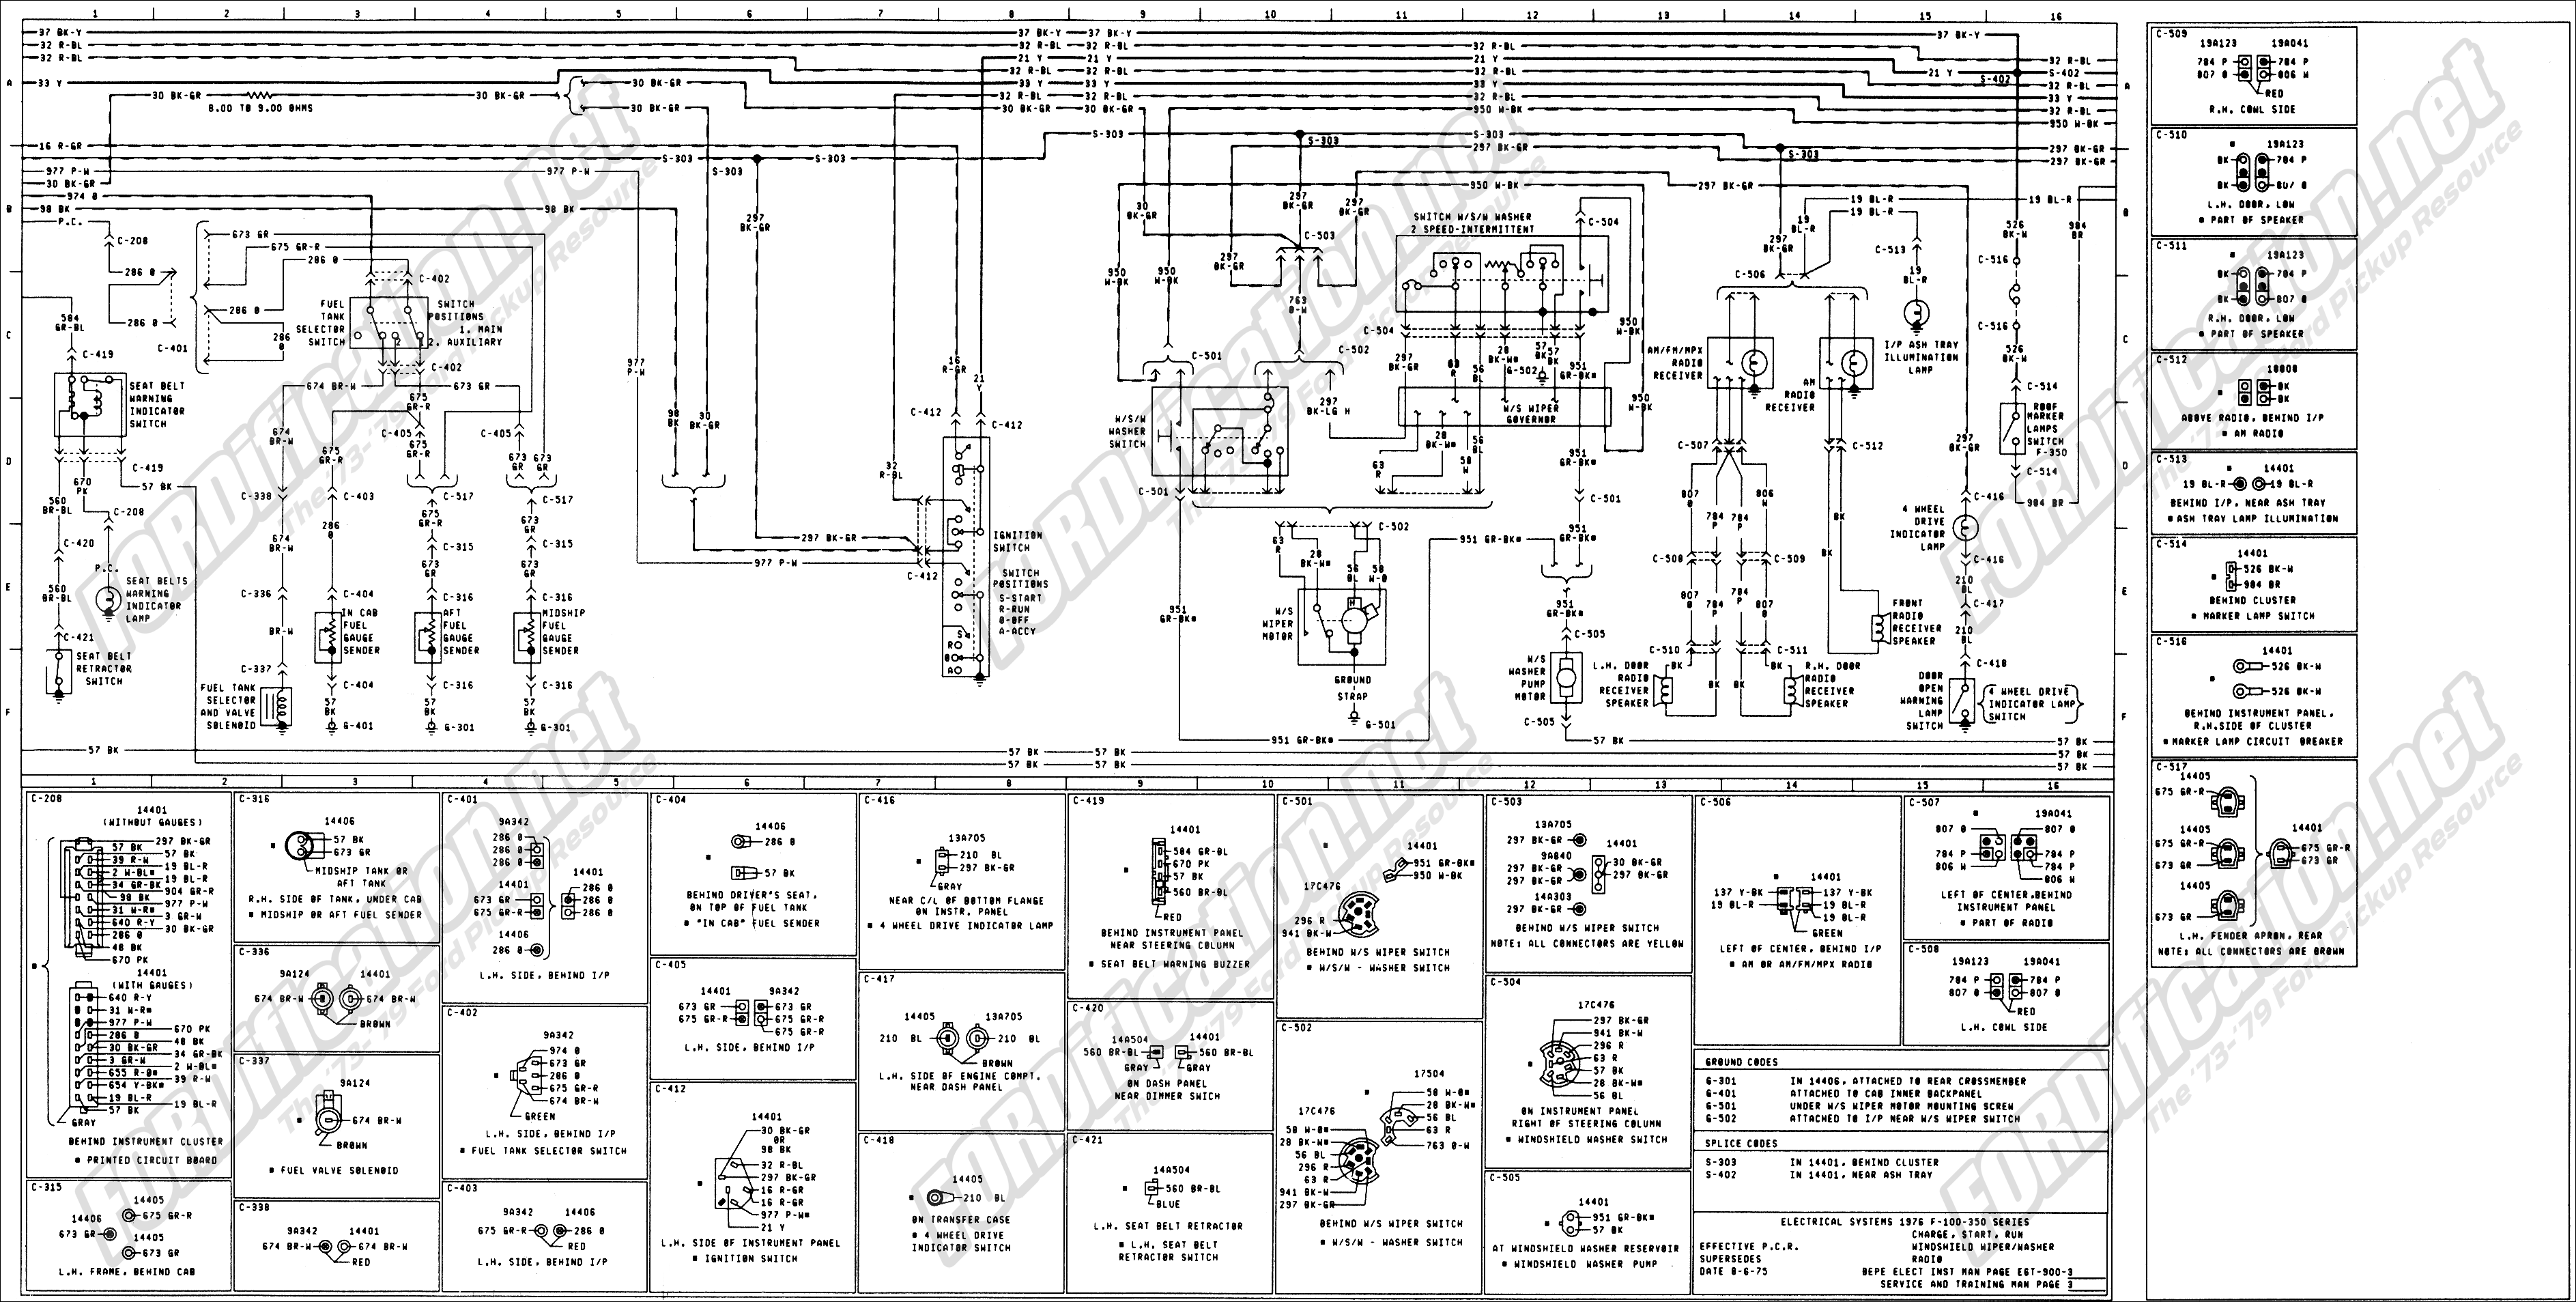 wiring_76master_3of9 1973 ford f250 wiring diagram ford f 150 starter wiring diagram 1995 ford l9000 wiring schematics at honlapkeszites.co